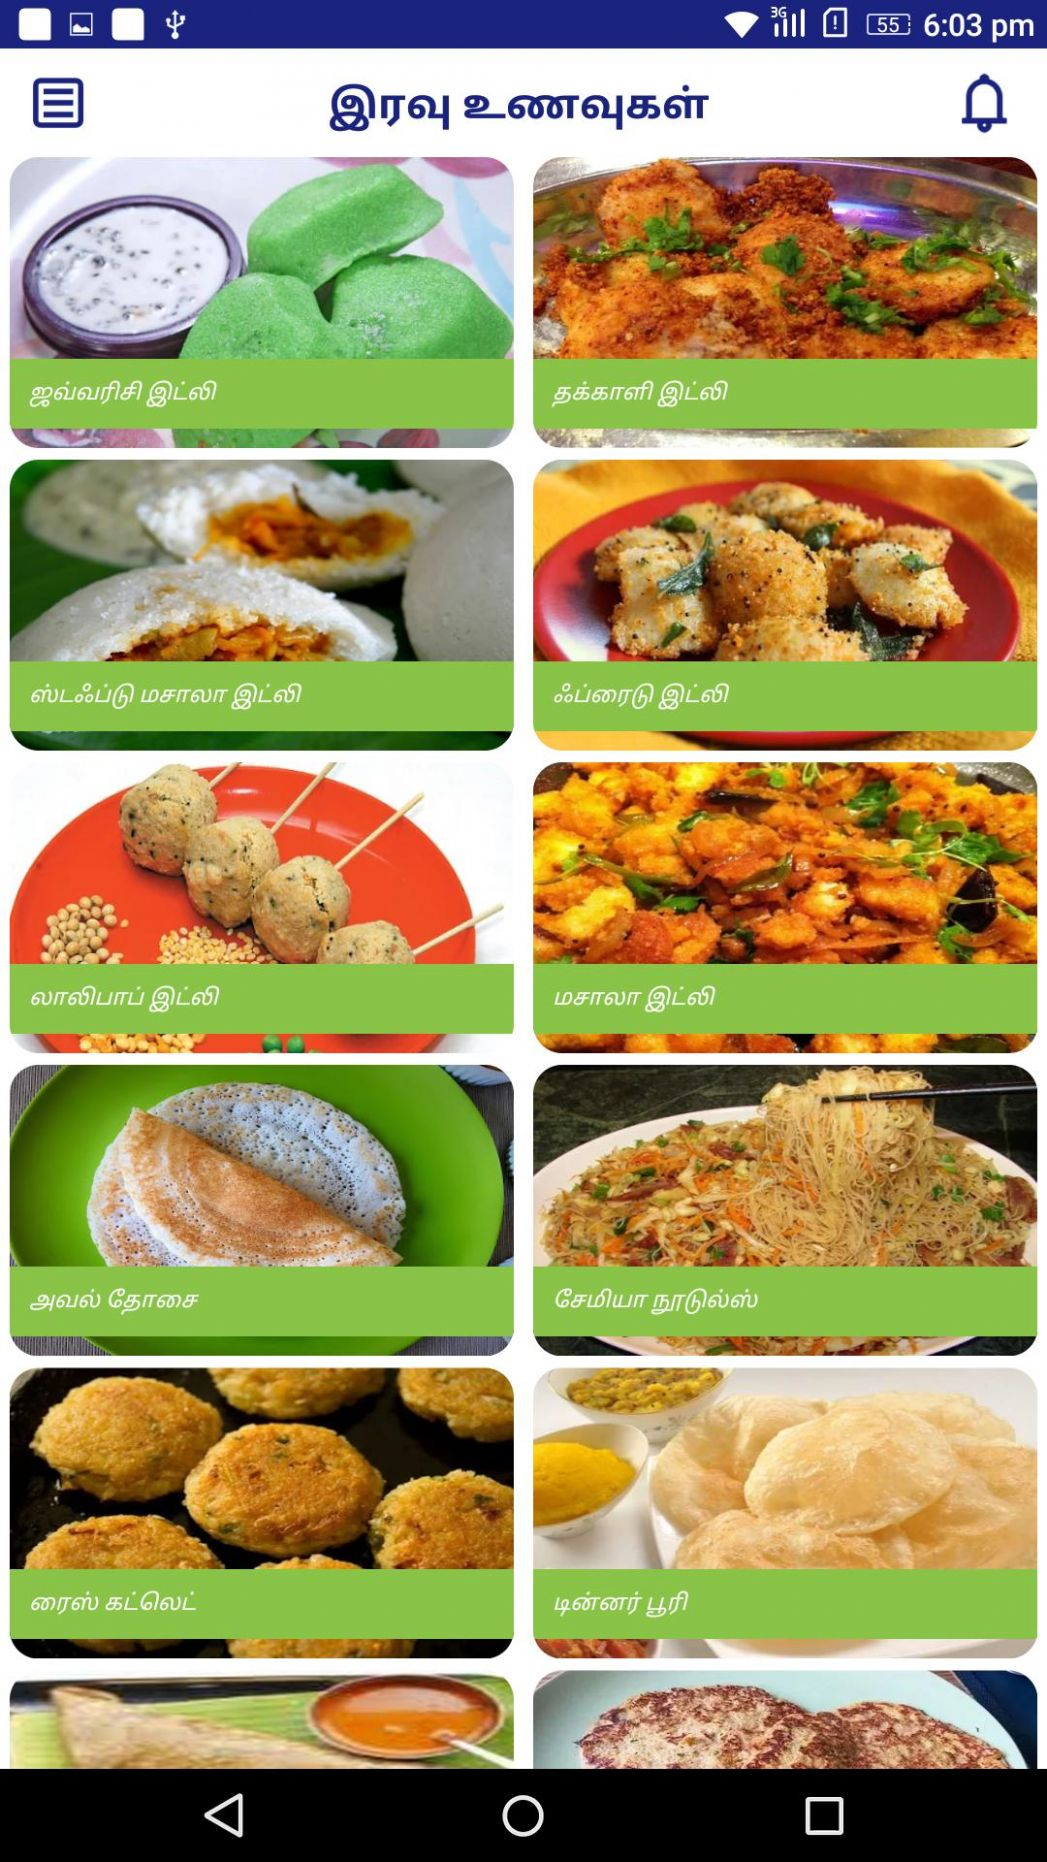 Dinner Recipes & Tips in Tamil for Android - APK Download - Dinner Recipes In Tamil